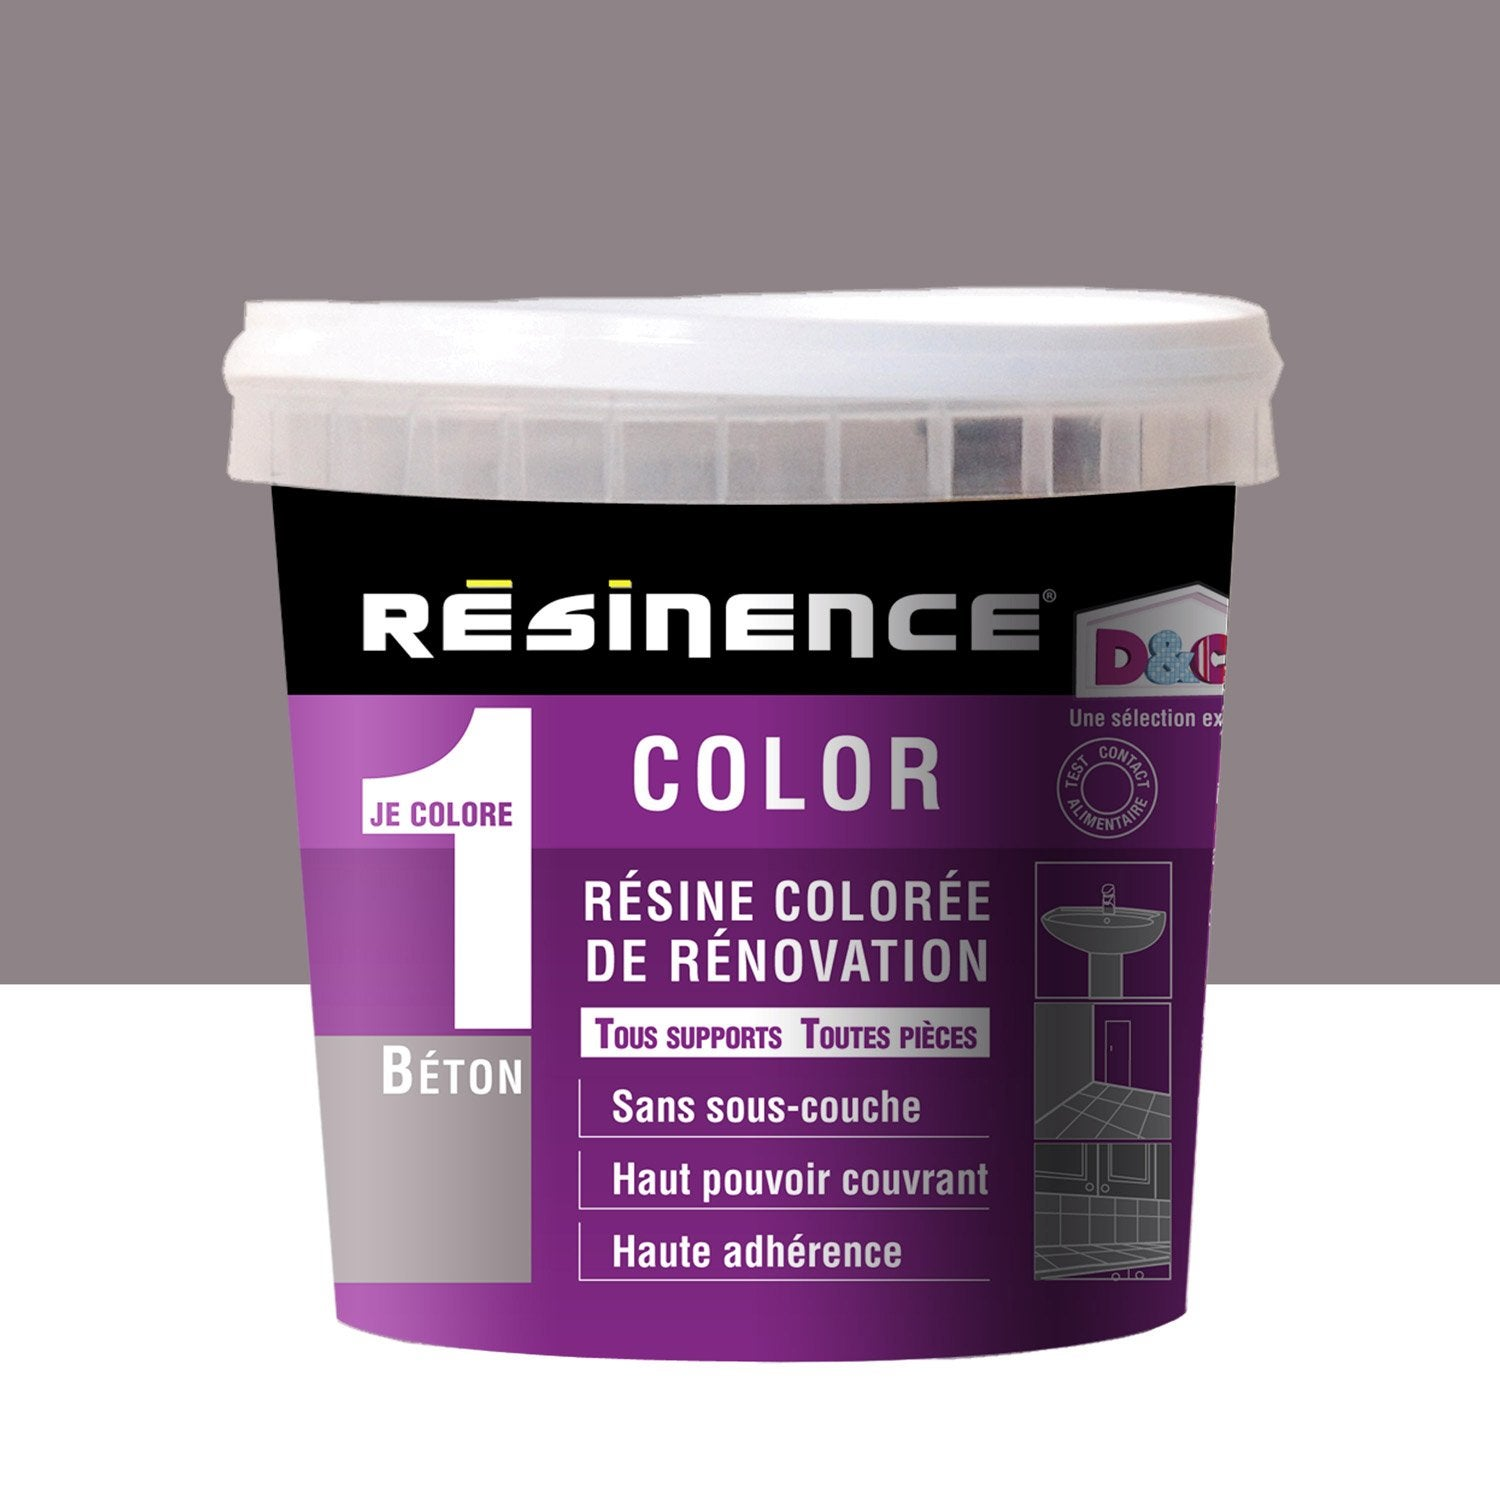 R sine color e color resinence gris urbain 0 5 l leroy merlin for Peinture resinence color